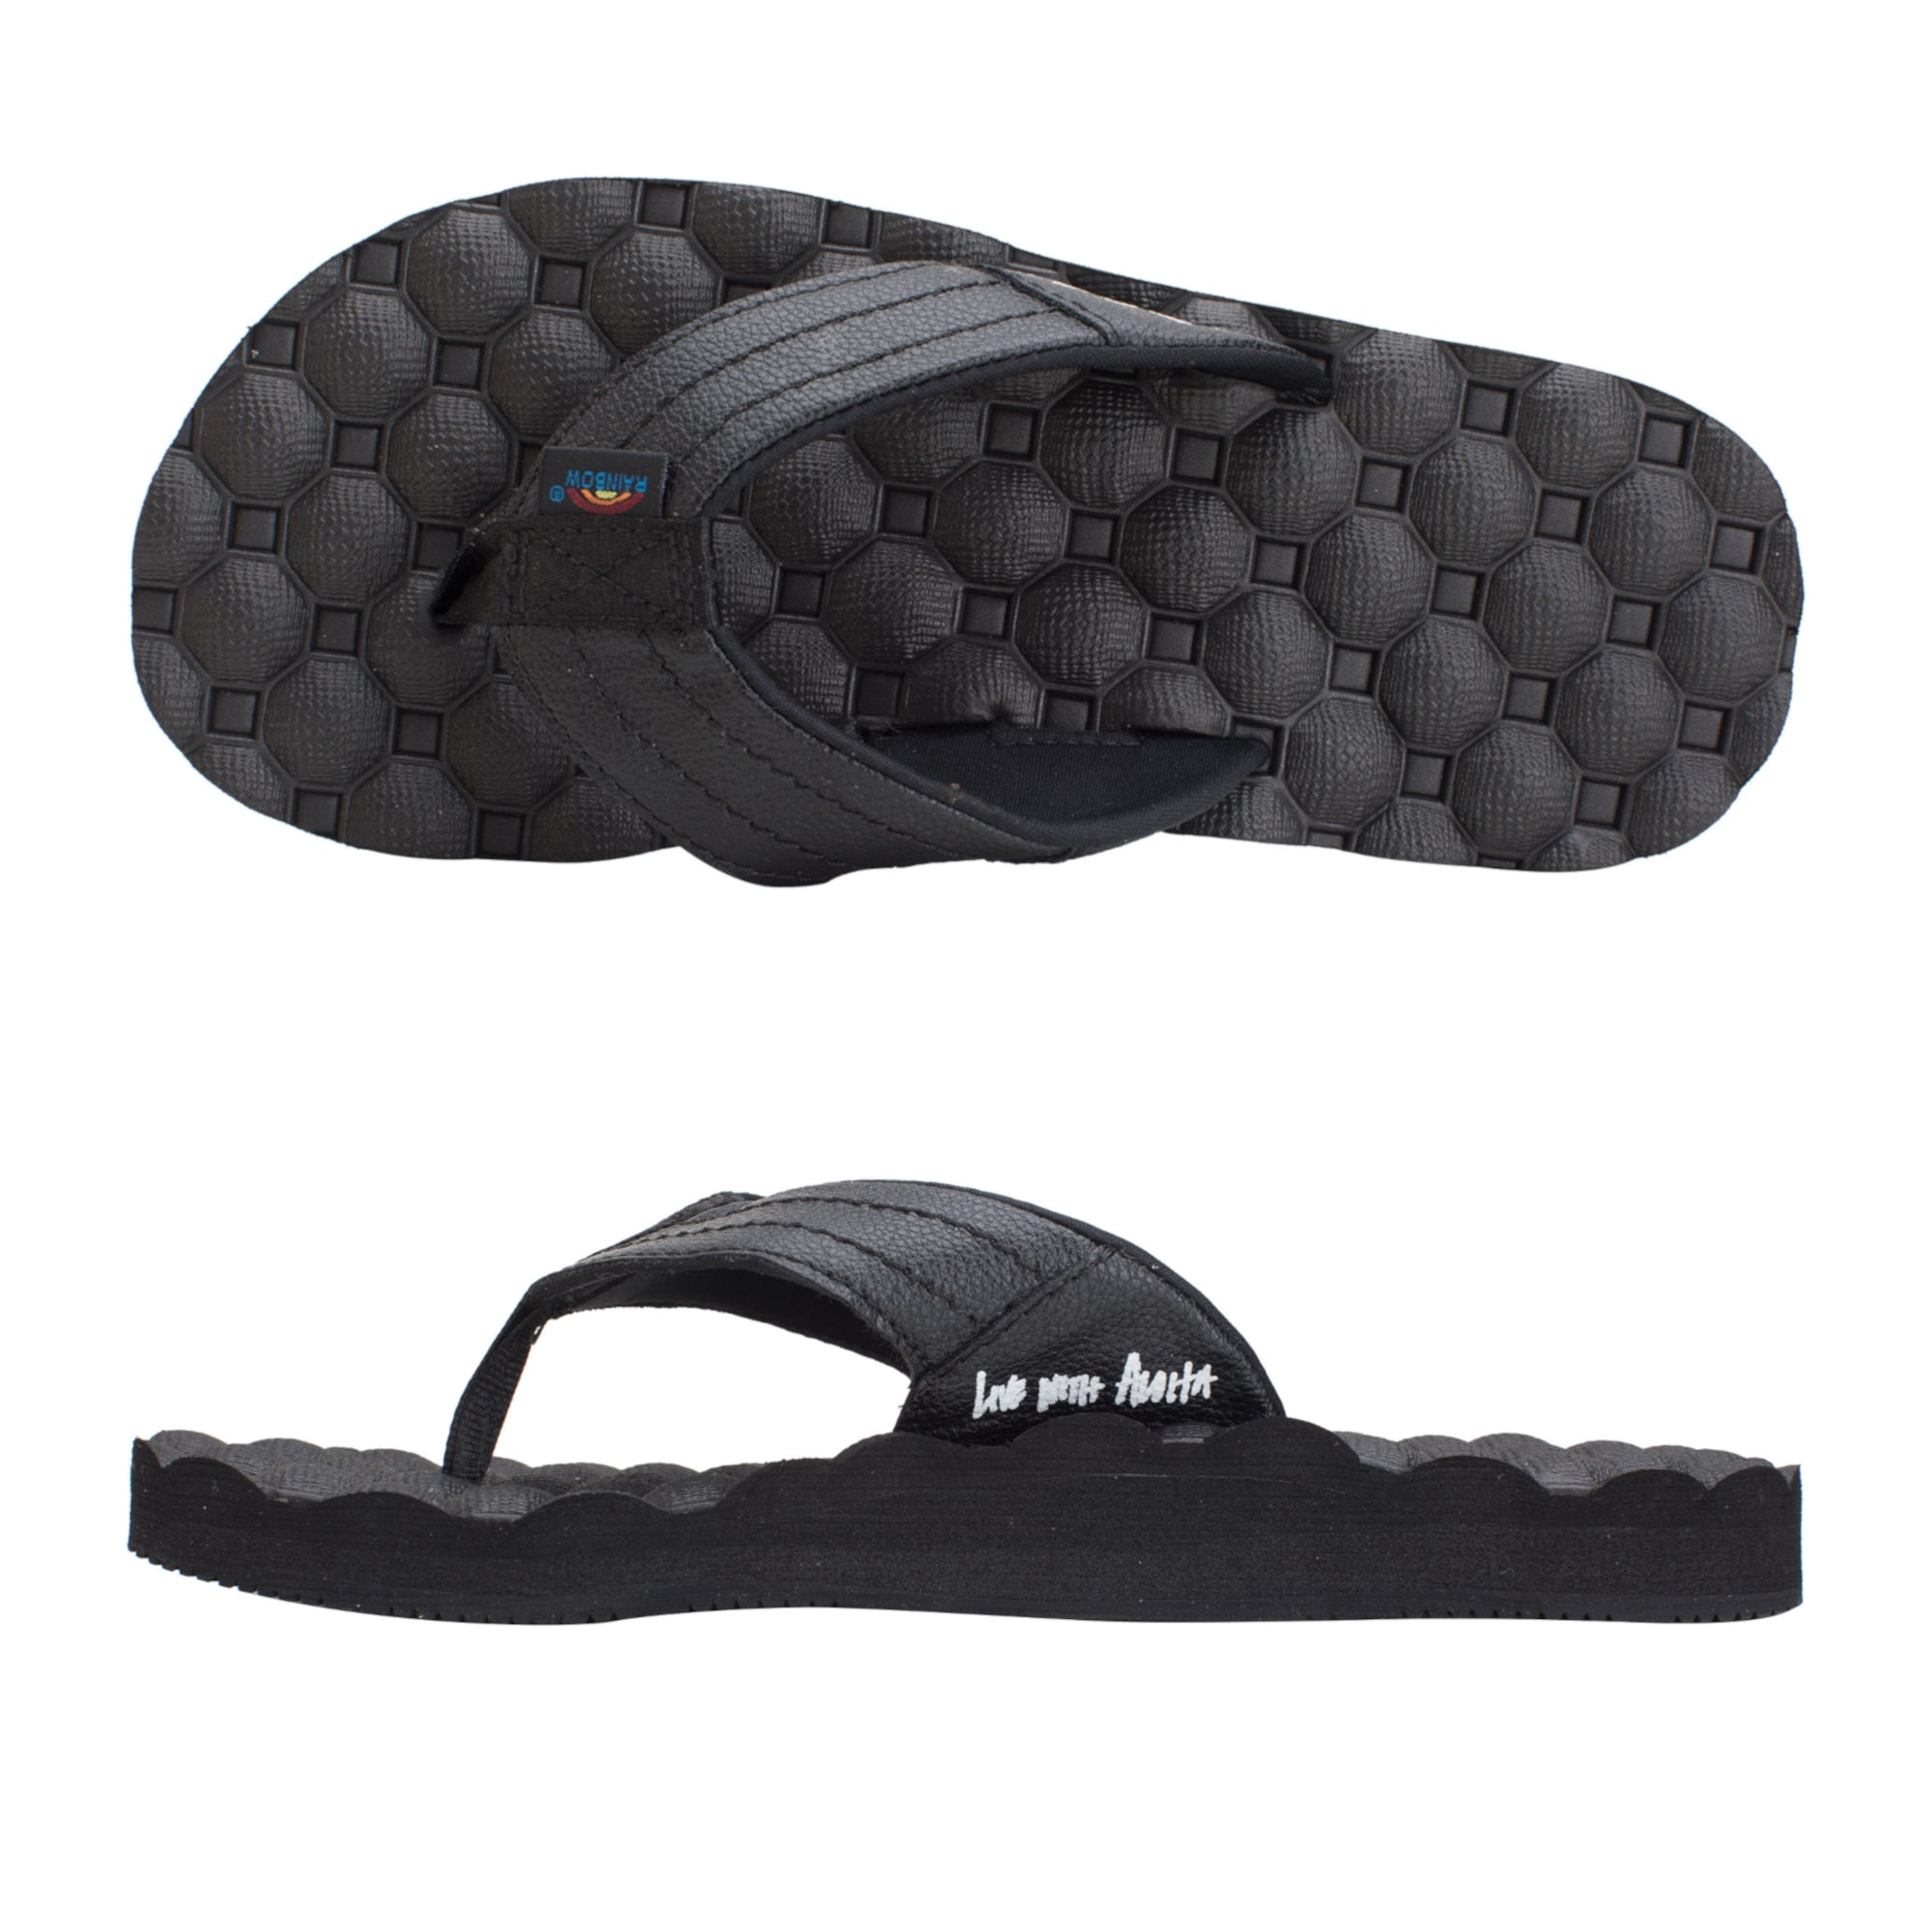 Rainbow Holoholo Gerry Lopez Rubber Signature Men's Sandals - Black